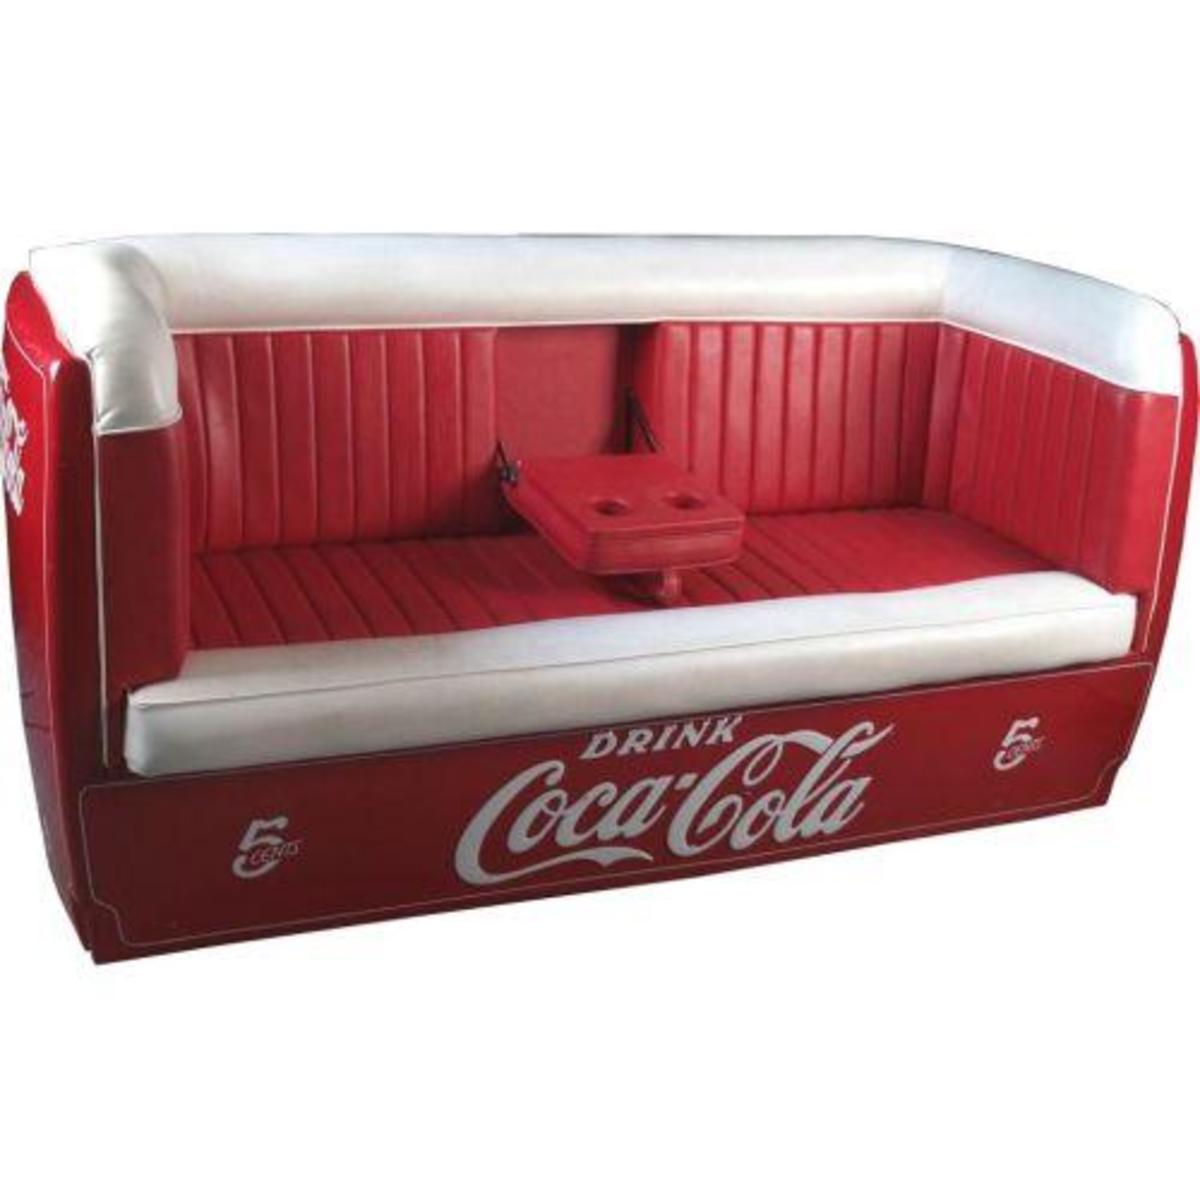 Coca Cola Couch - Crafted from a Coca Cola Cooler